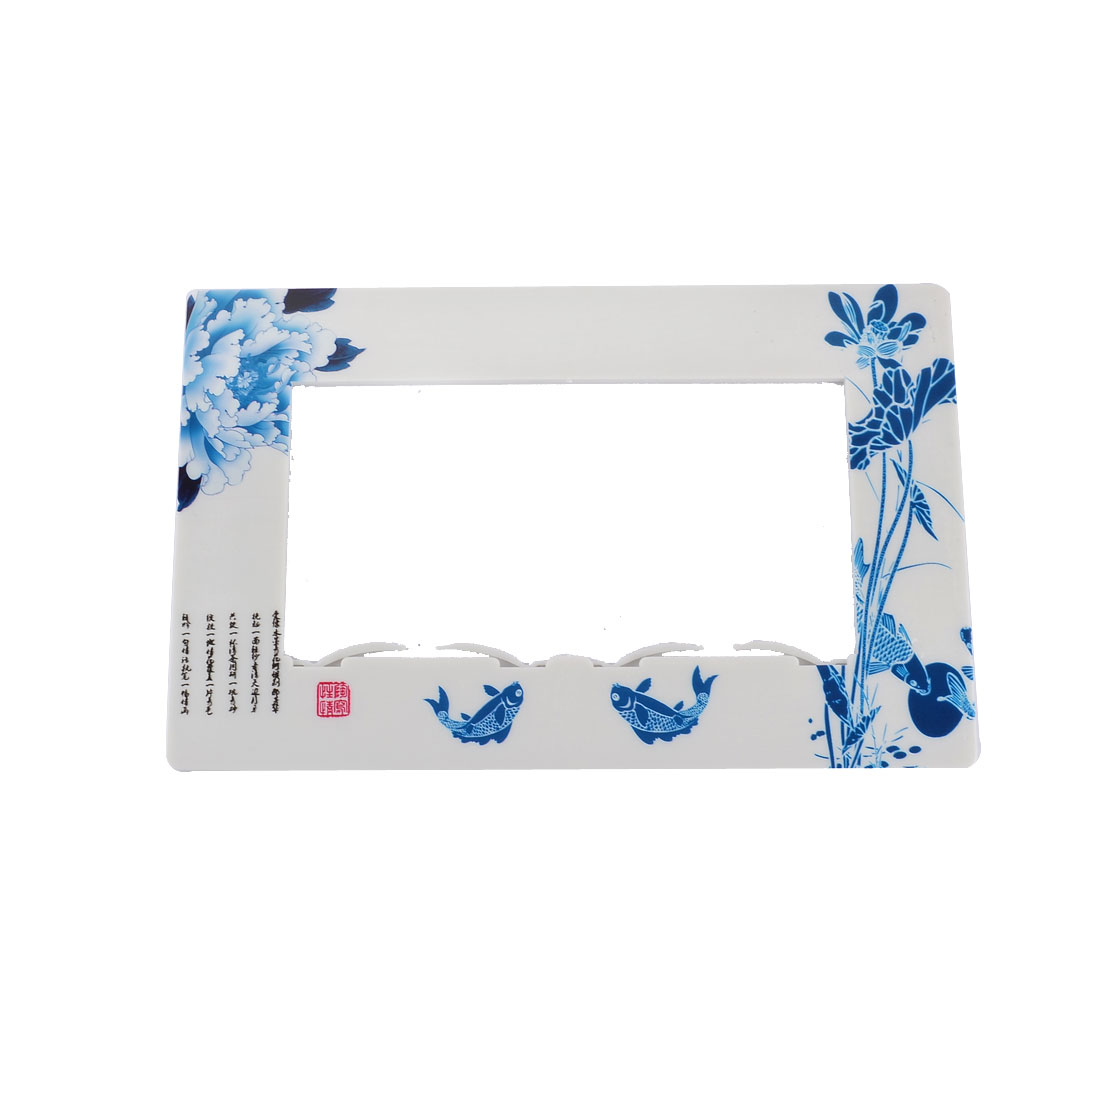 Plastic Flower Fish Pattern Double Open Light Switch Cover Plate White Blue